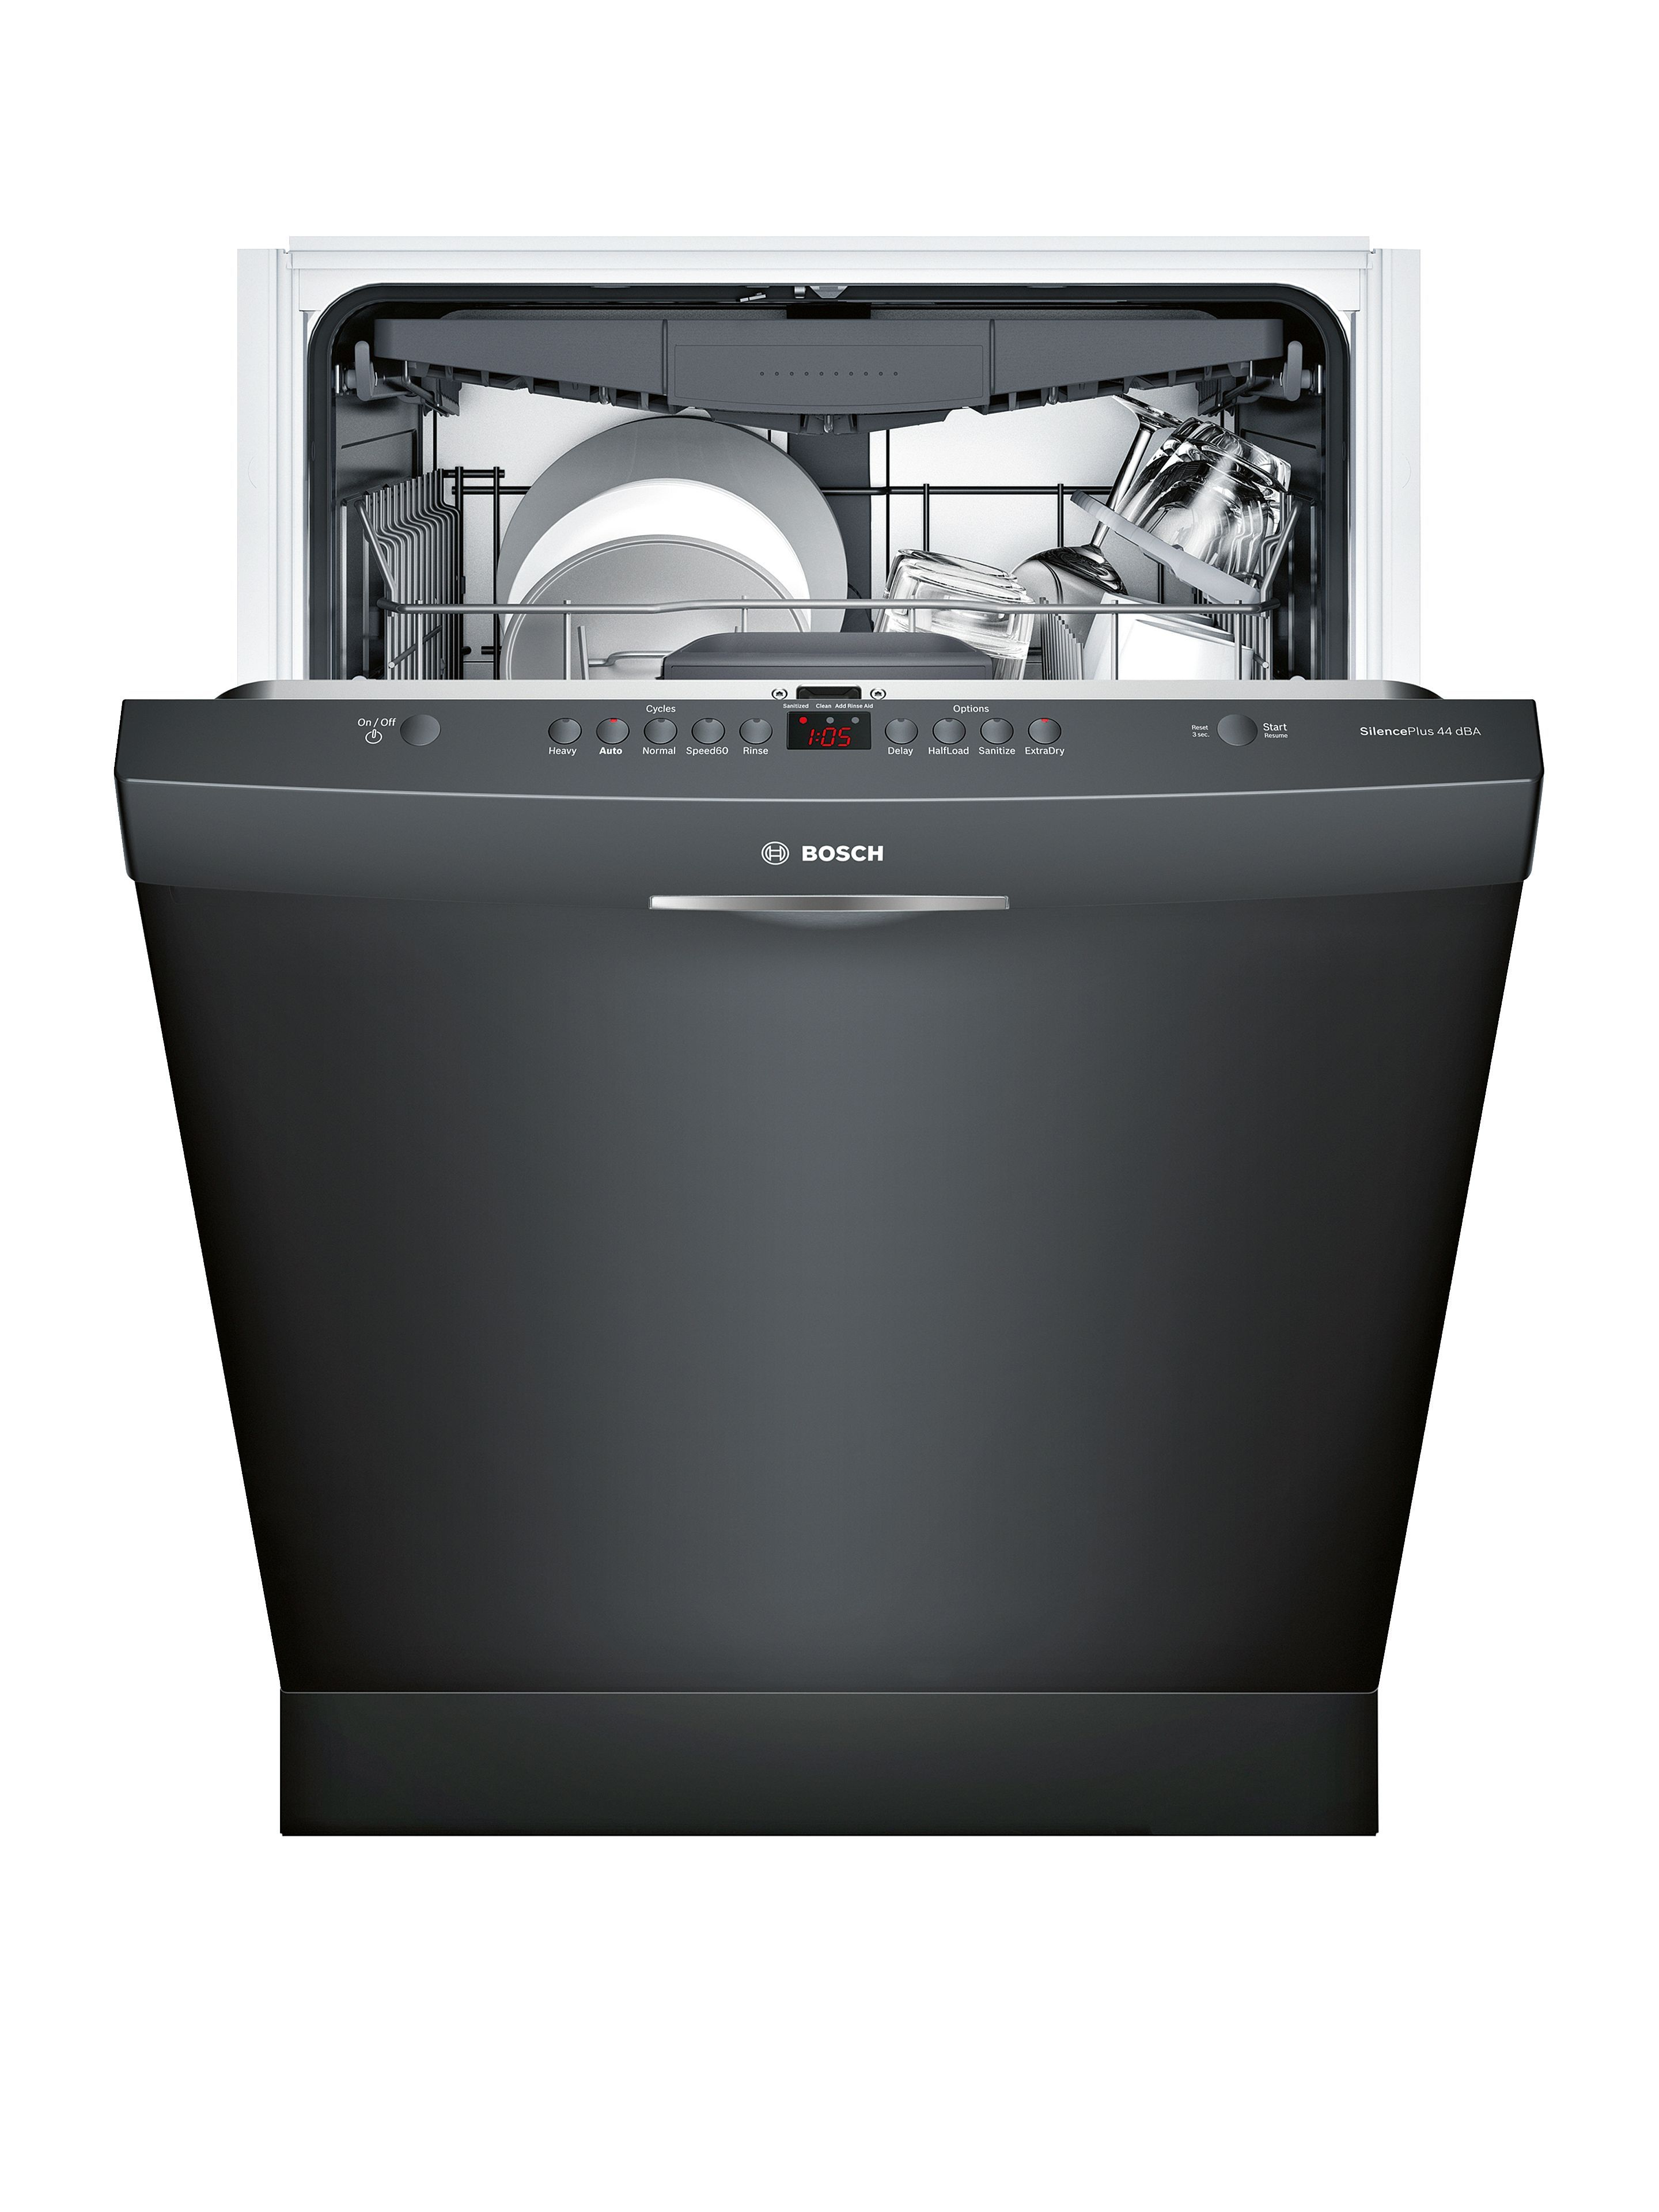 Bosch Shsm63w56n Dishwasher Bosch Appliances Kitchen Bosch Kitchen Kitchen Dishwasher